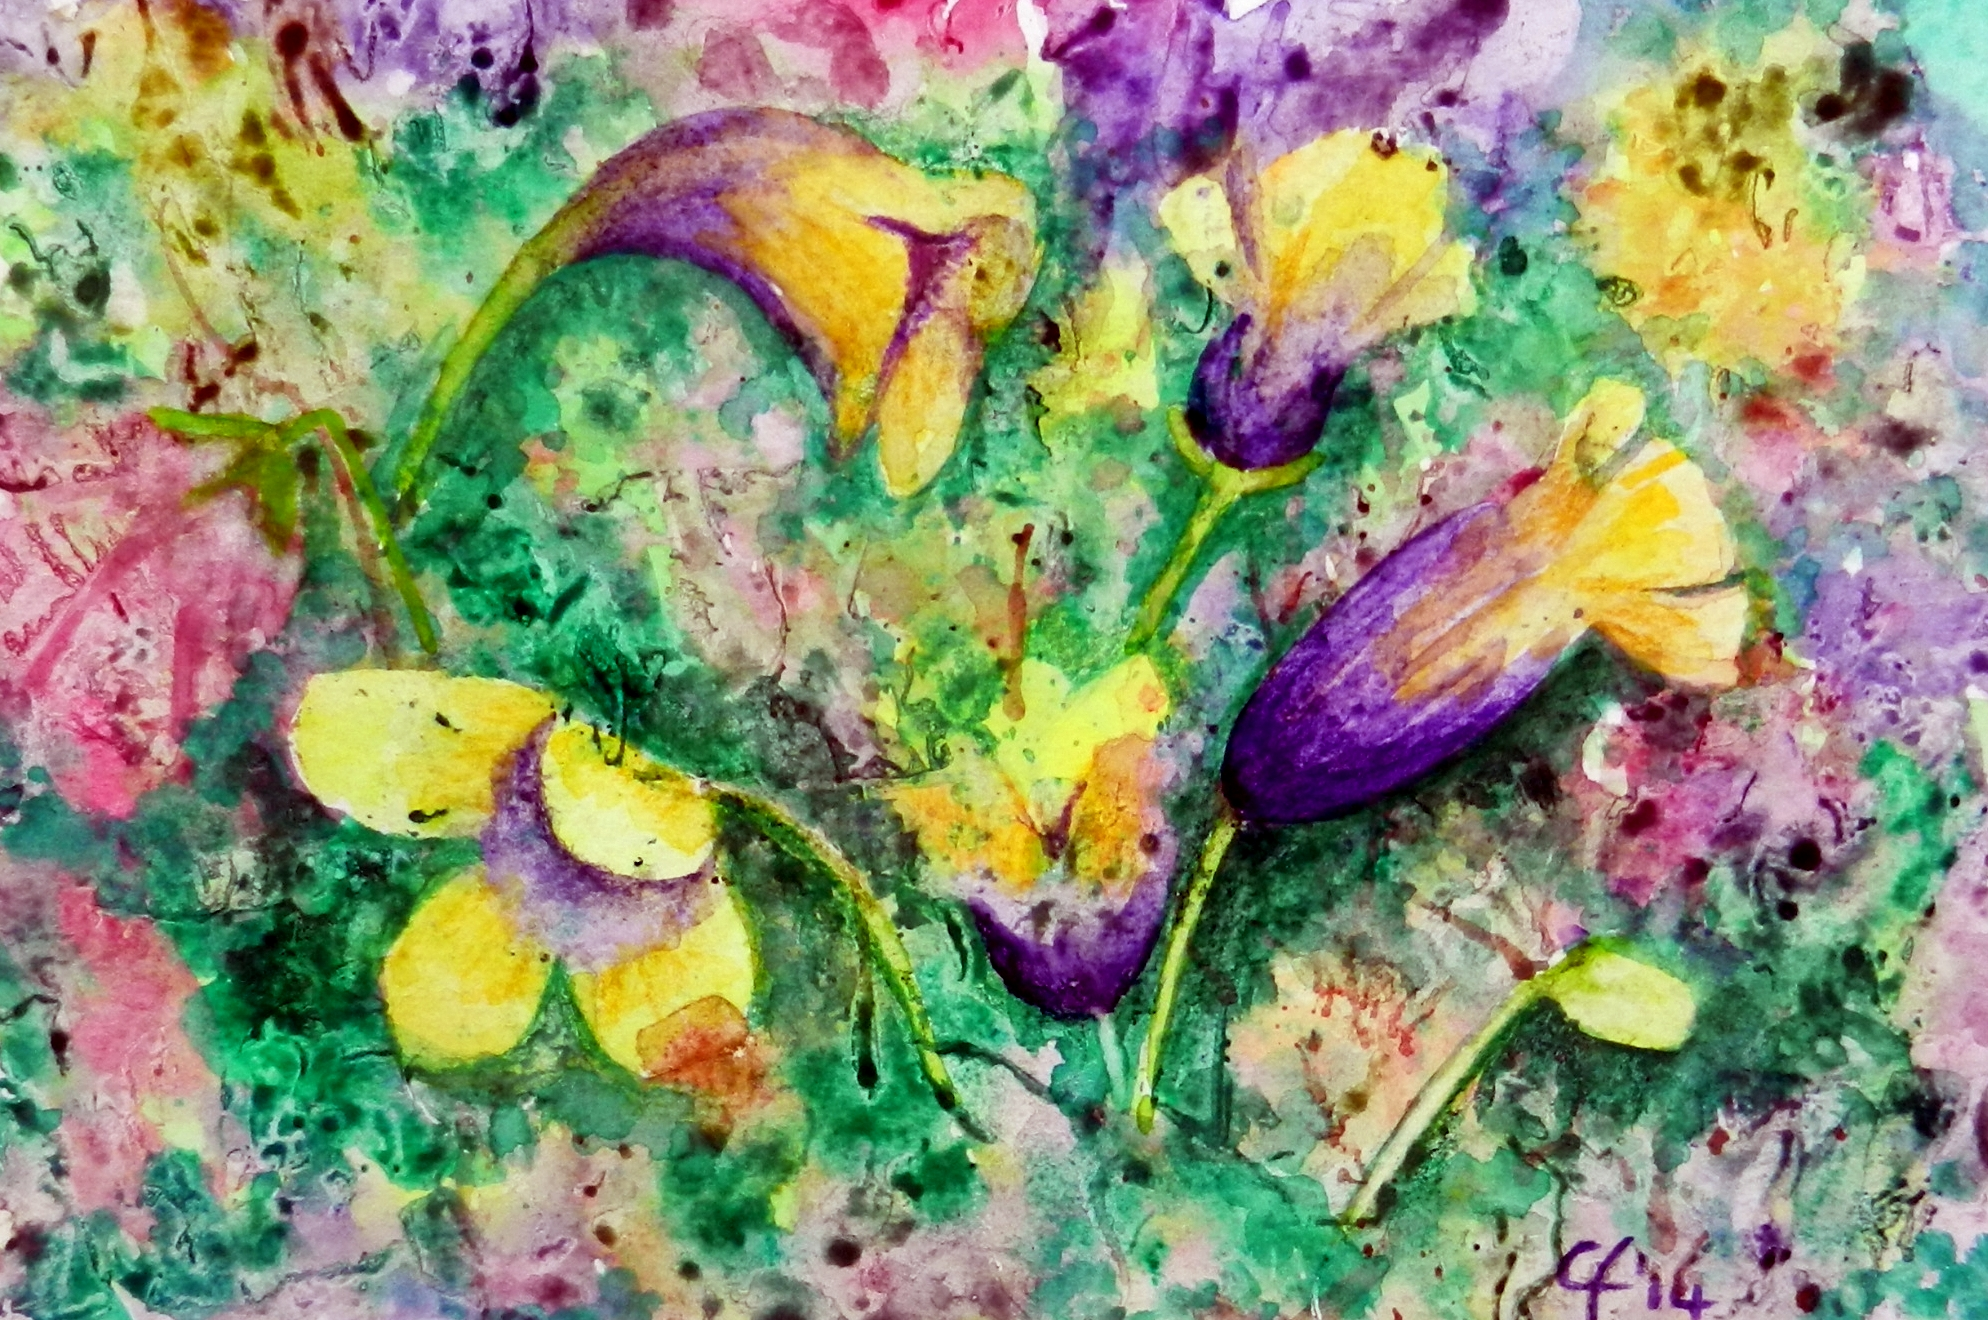 Primroses, Primule, Watercolor, Painting, Nature, Flowers, Spring, Clara Fruggeri